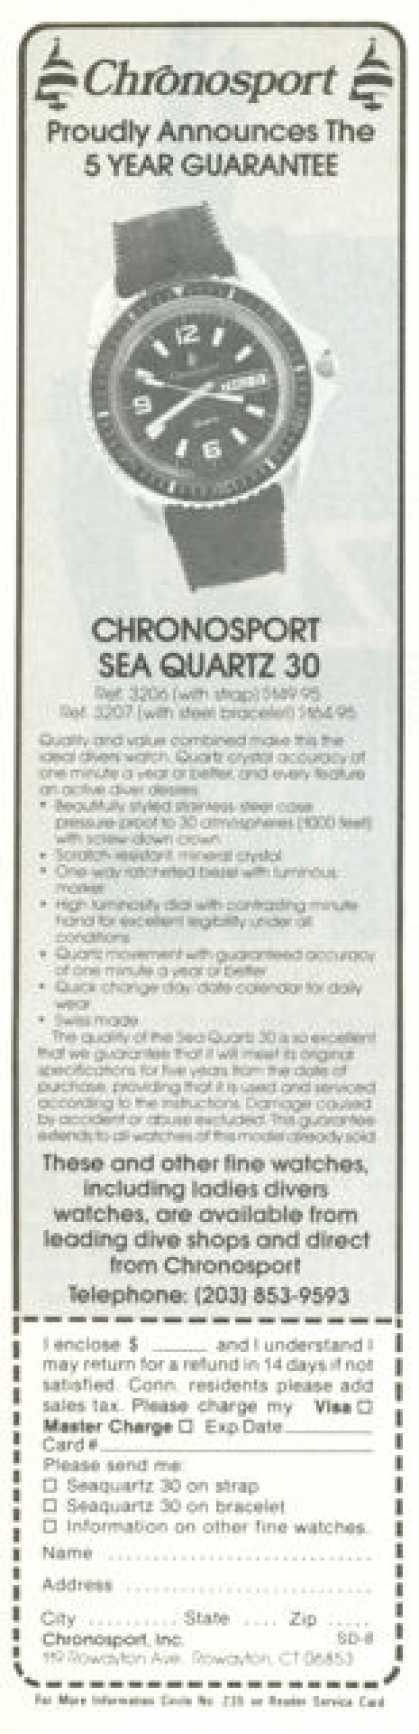 Chronosport Seaquartz 30 Scuba Divers Watches (1978)